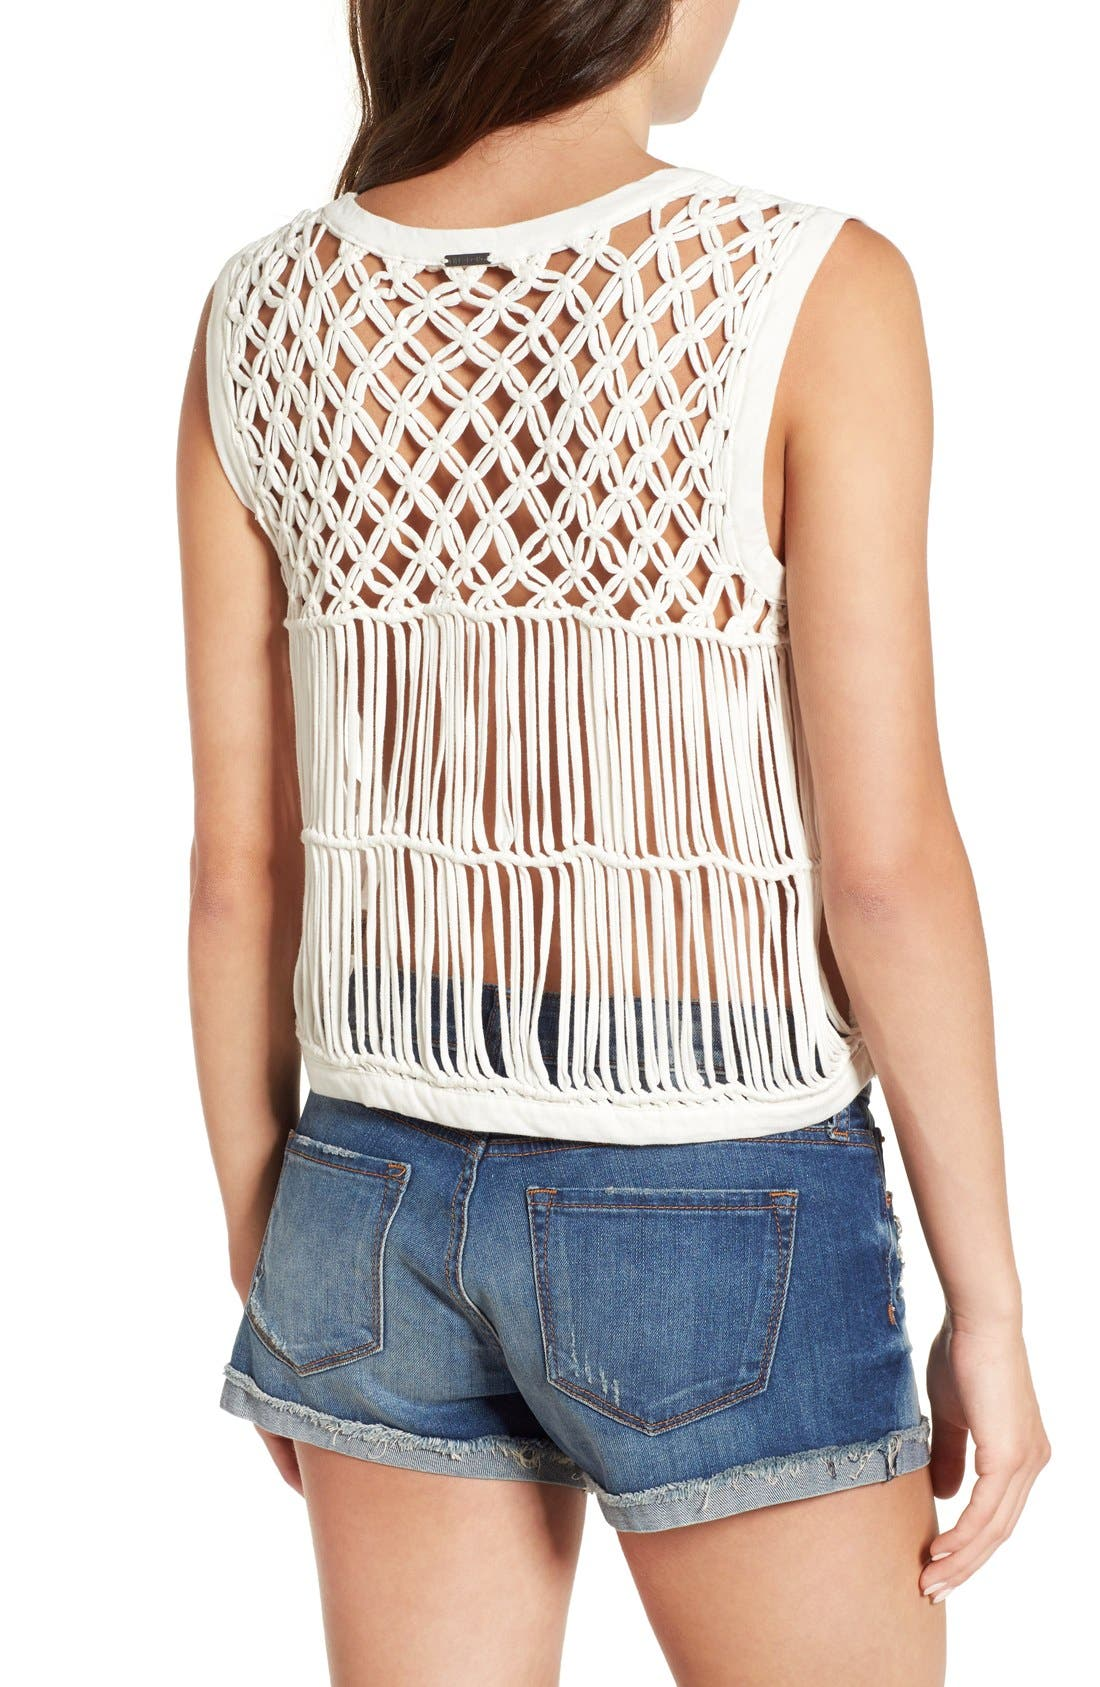 Alternate Image 1 Selected - Billabong 'Right Time' Macramé Back Muscle Tee